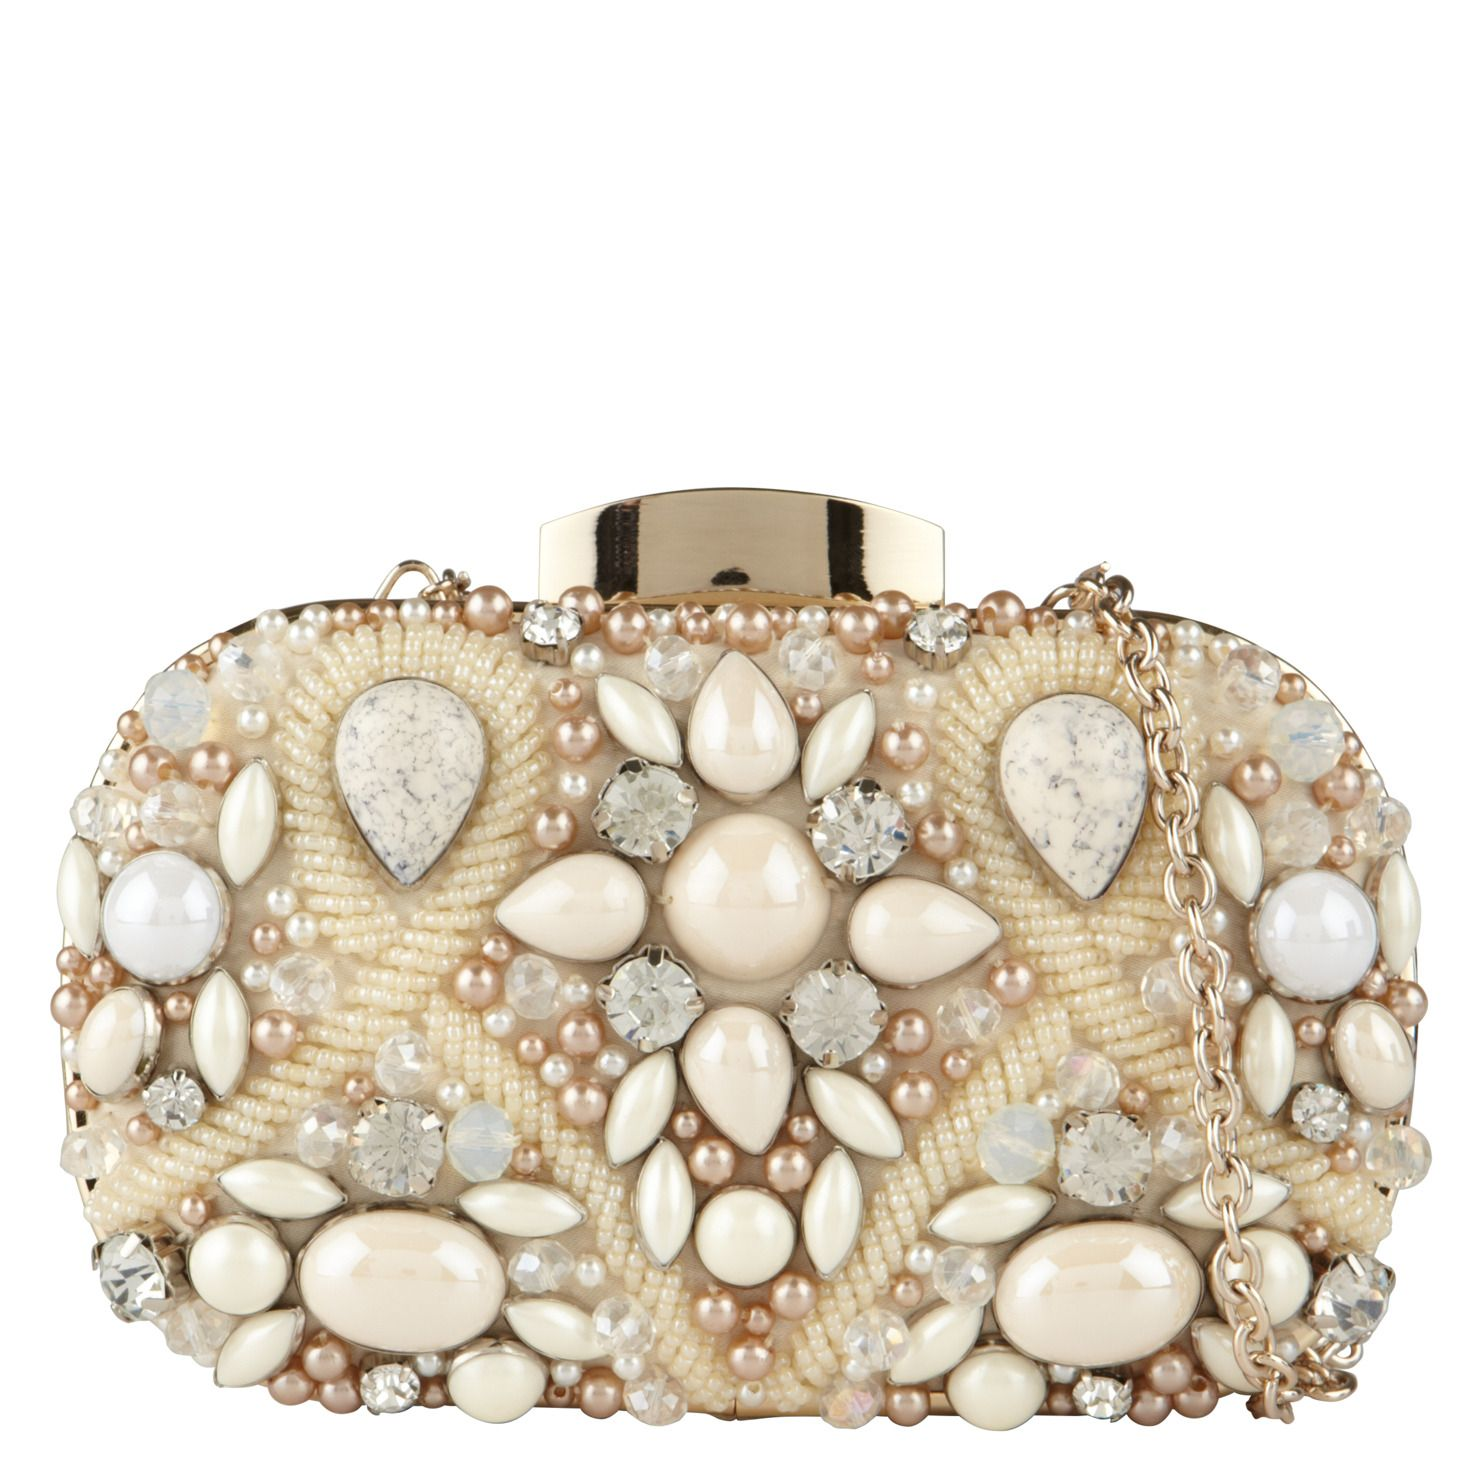 TRAWICK - handbags's clutches evening bags for sale at ALDO Shoes ...